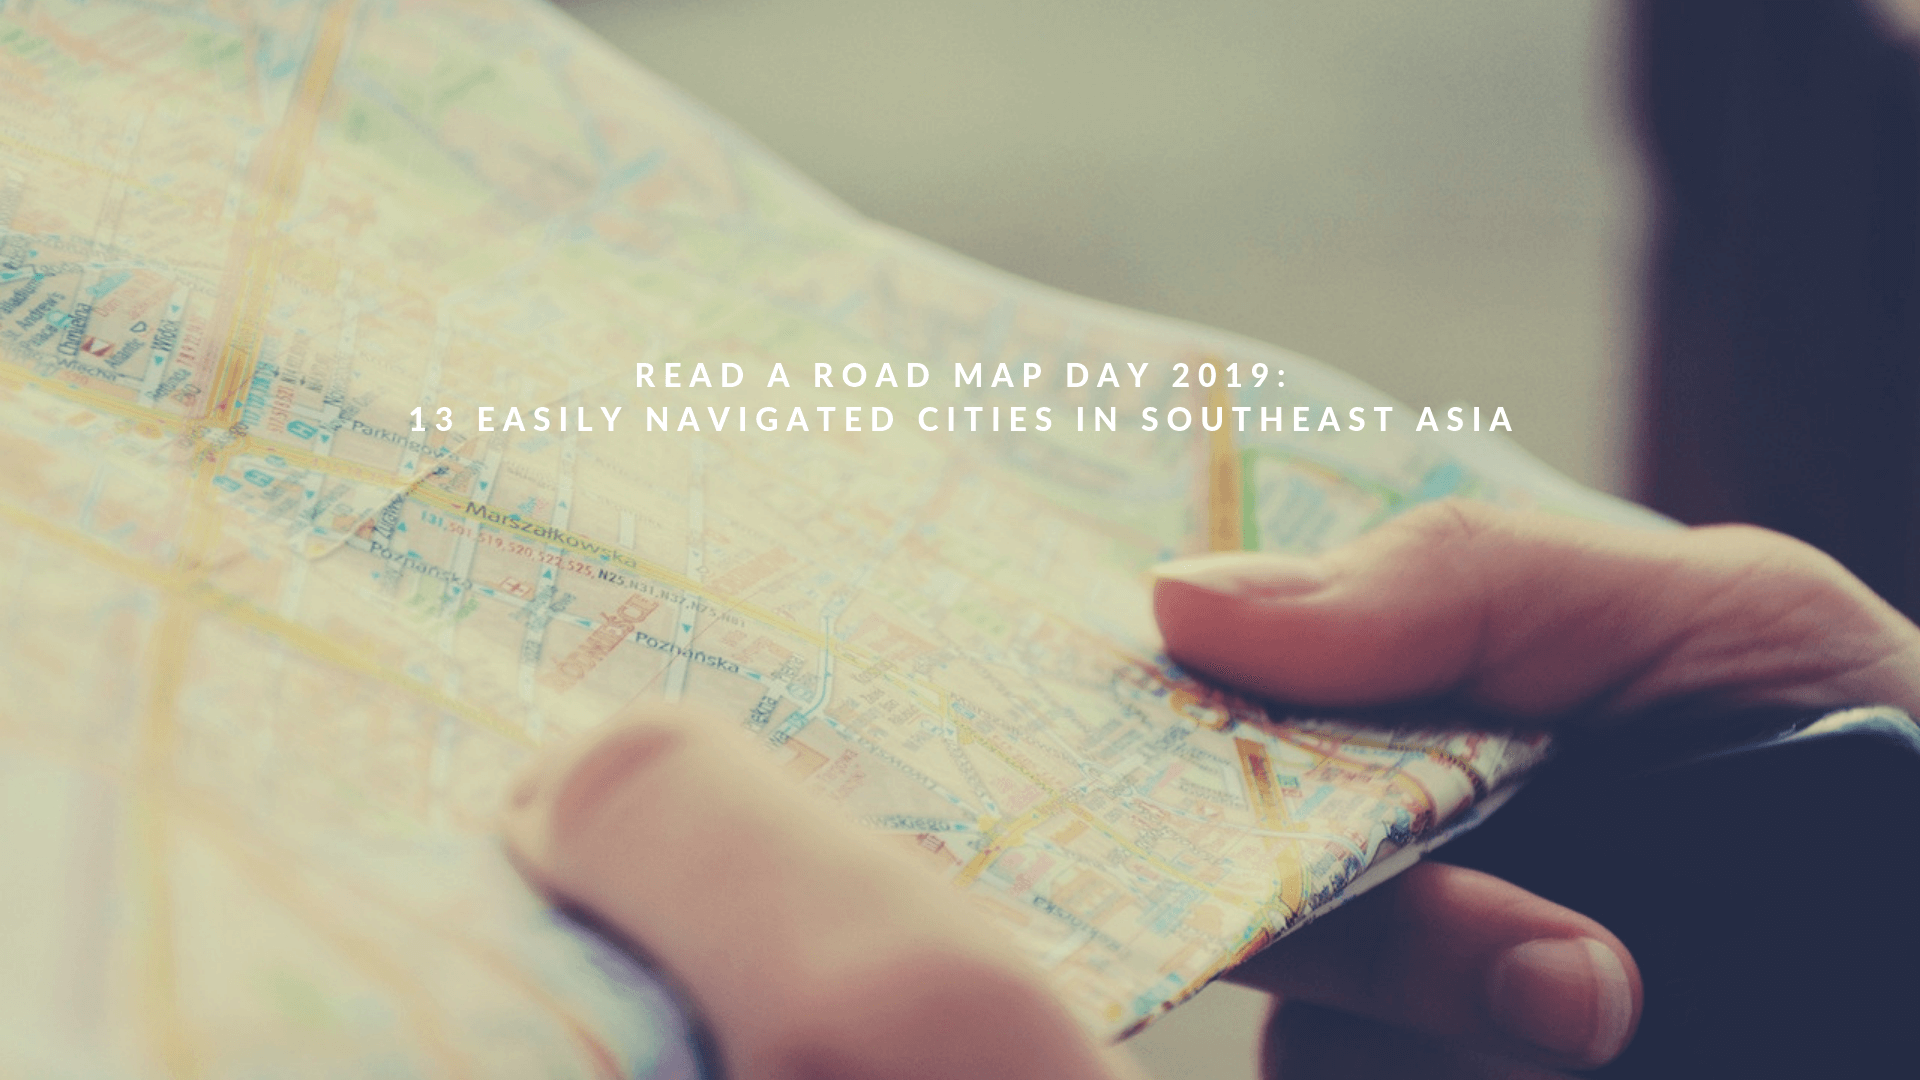 Read A Road Map Day 2019: 13 Easily Navigated Cities in Southeast Asia